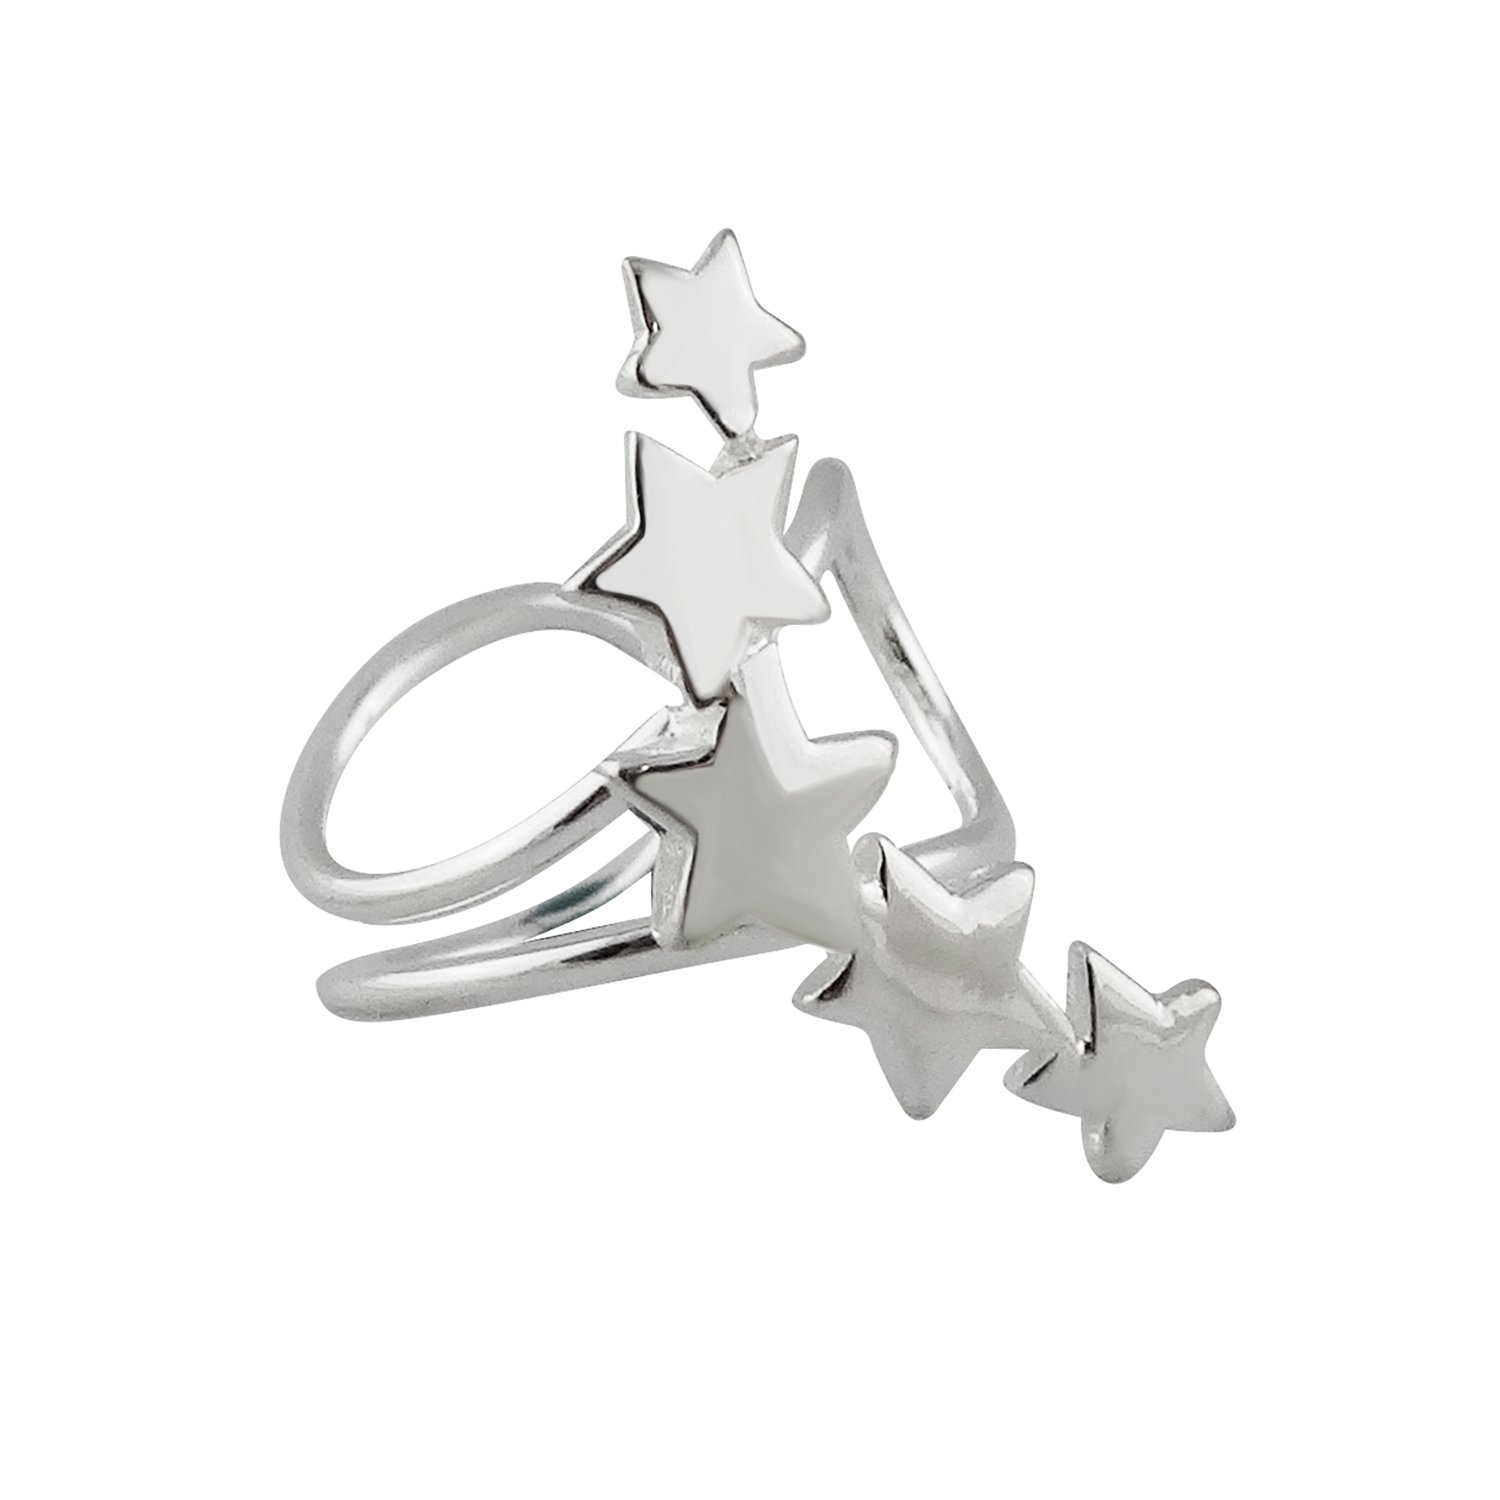 Sterling Silver Shooting Stars Ear Wrap Cuff Earring, Left or Right Ear, No piercing